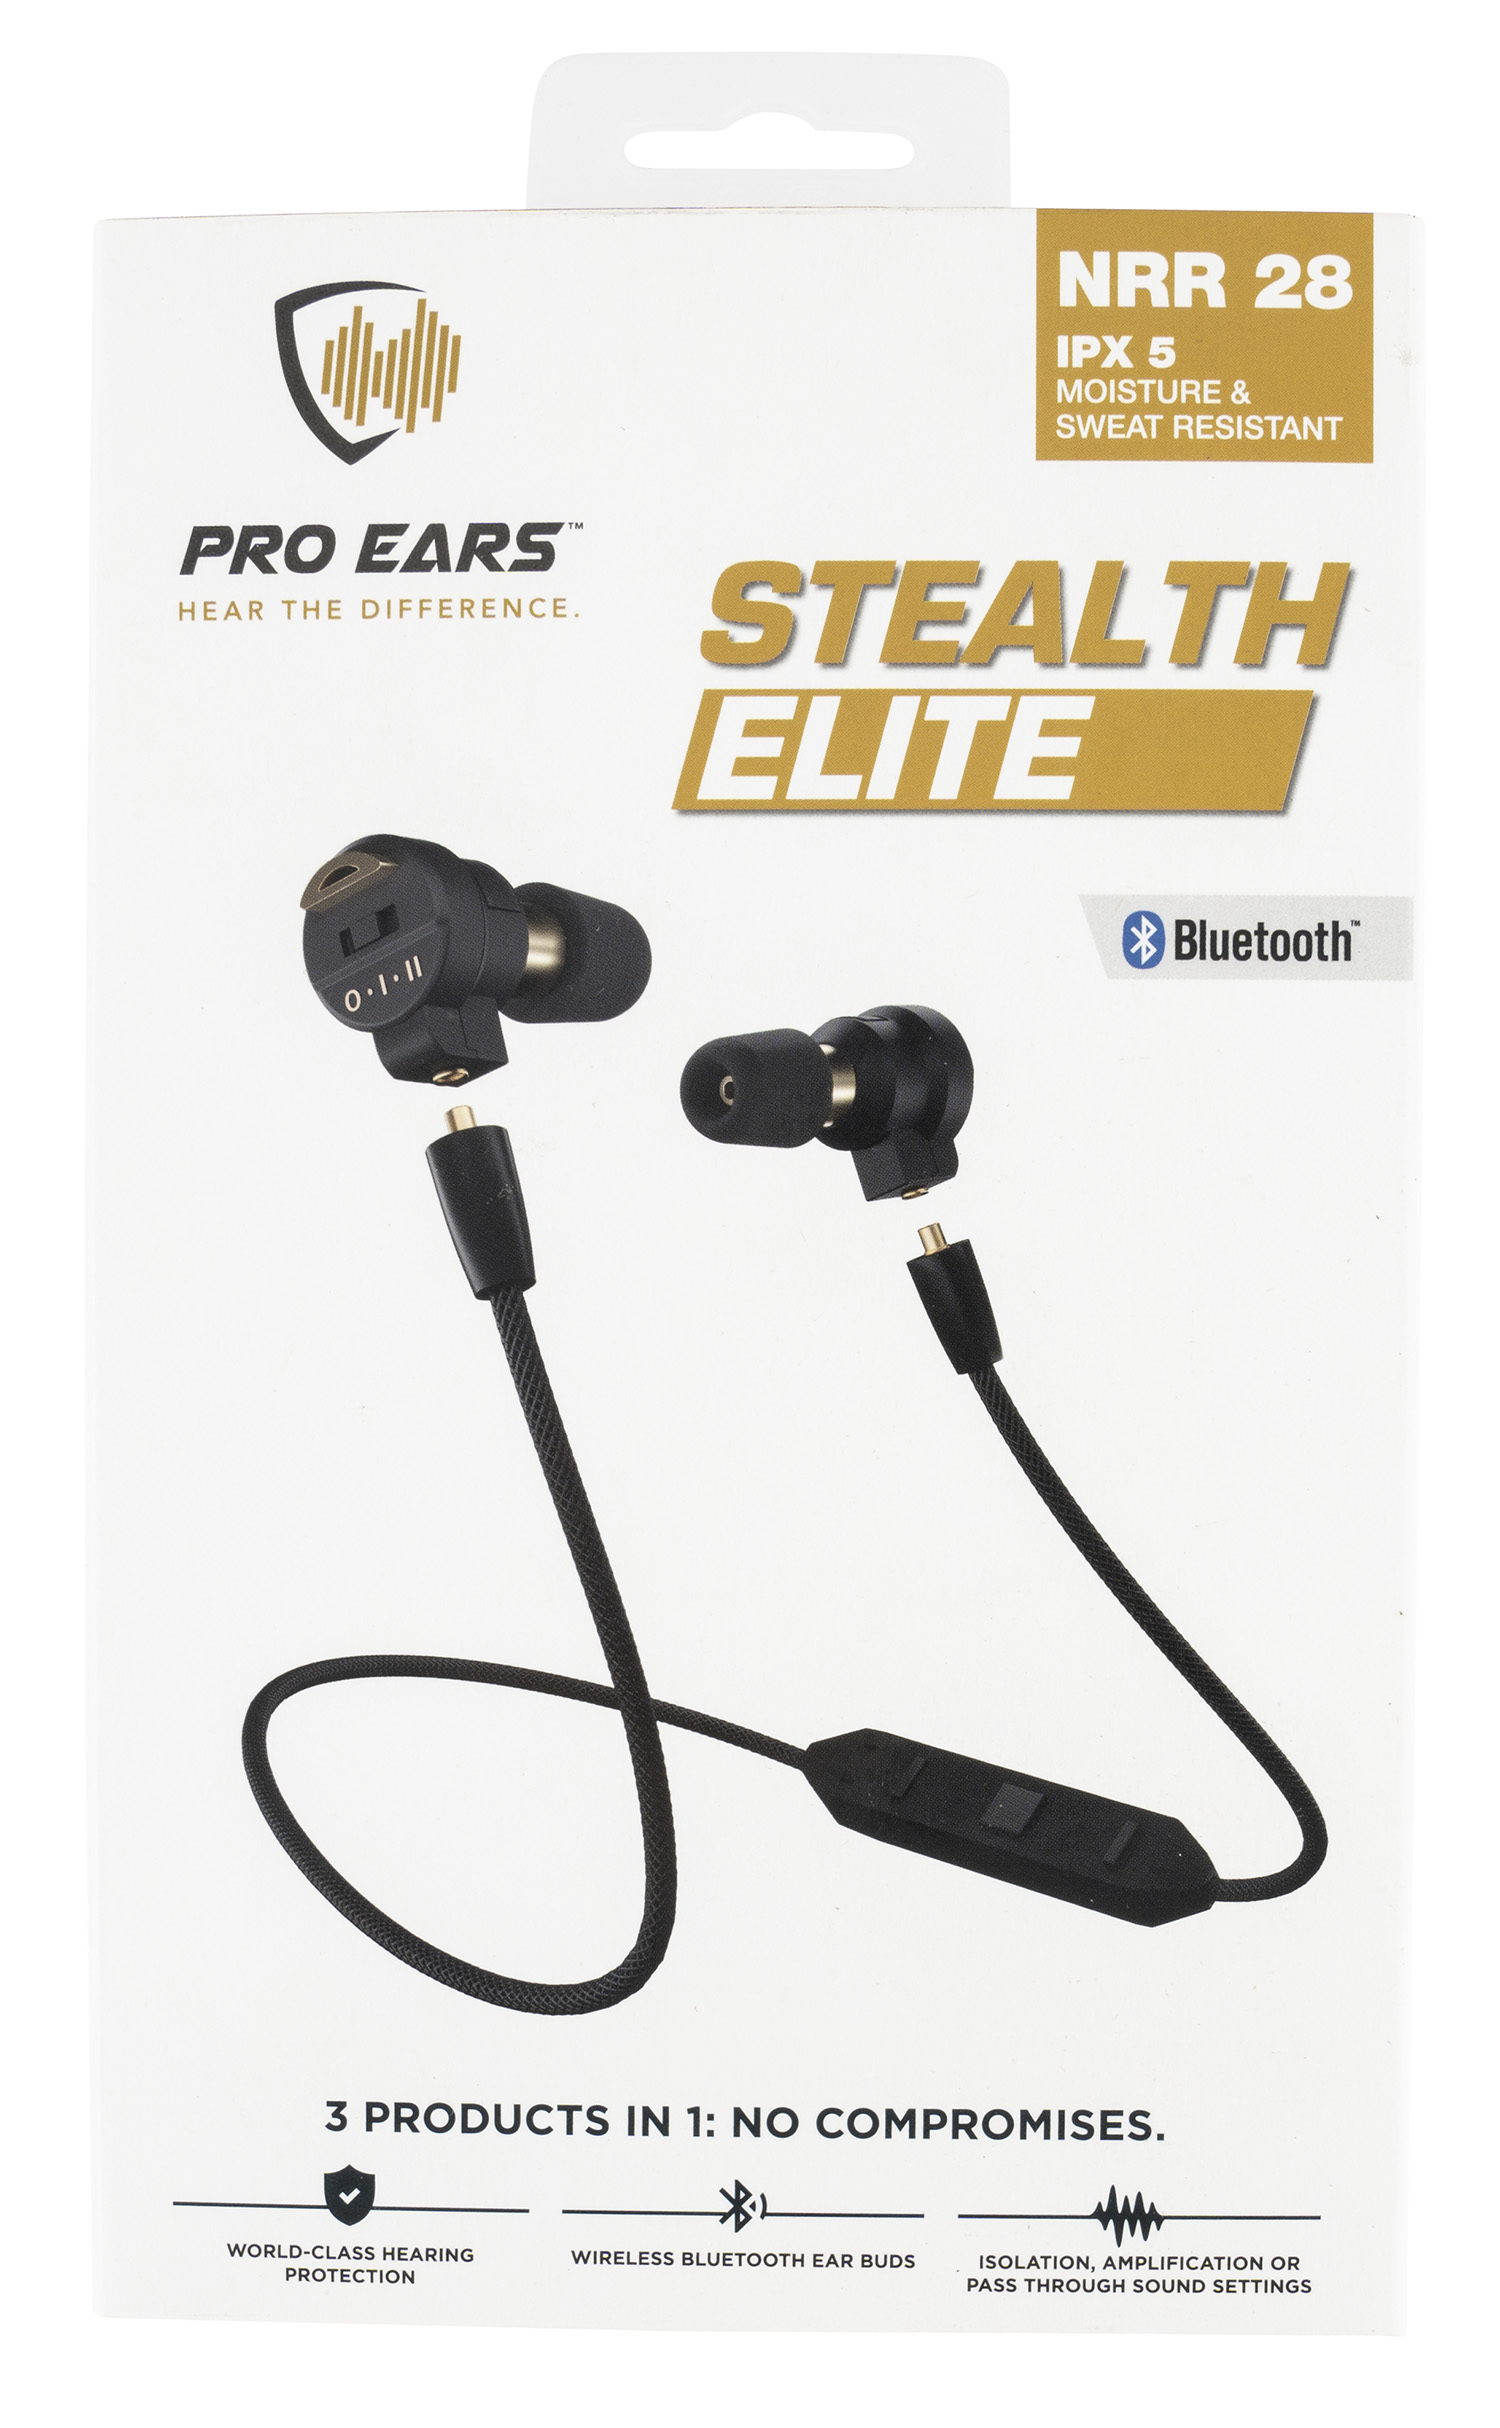 Pro Ears Stealth Bluetooth Elite Hearing System